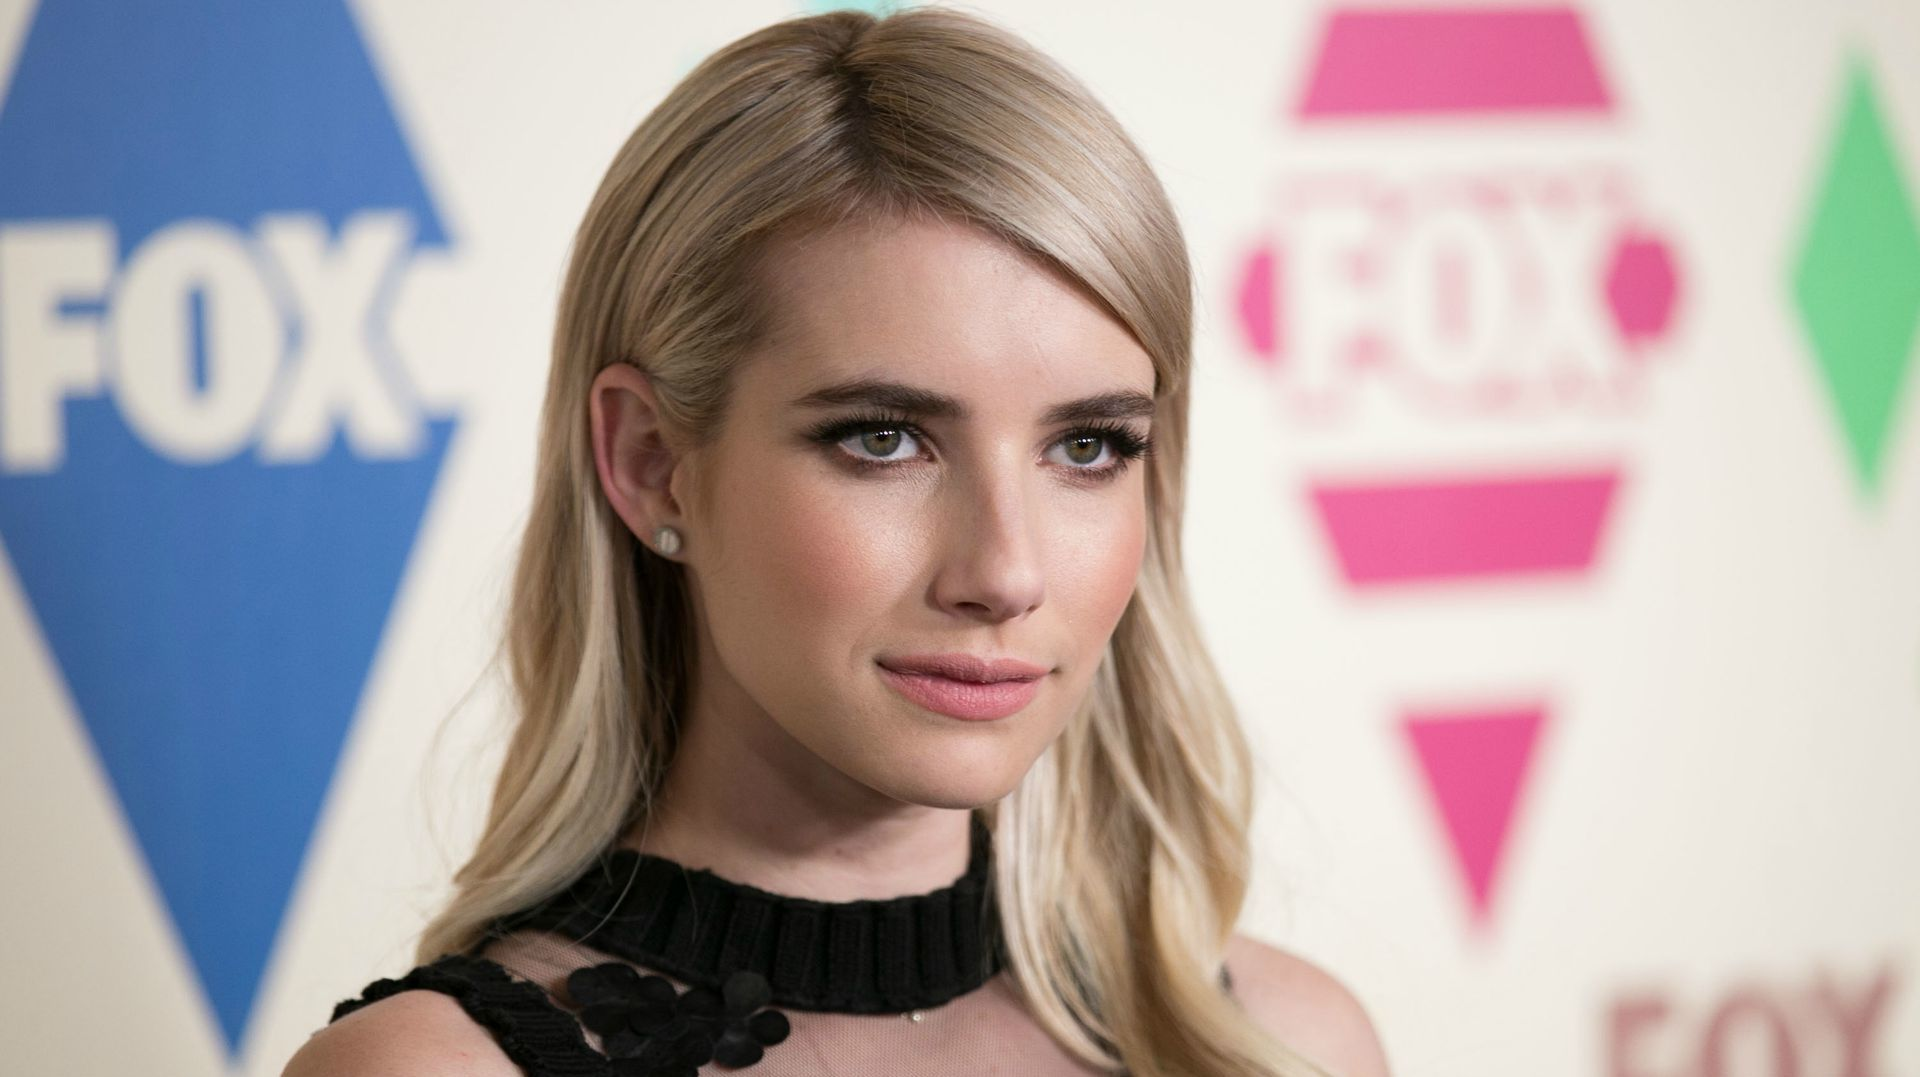 Emma Roberts Shamed For Being Too Fit And Thin In Lingerie Campaign